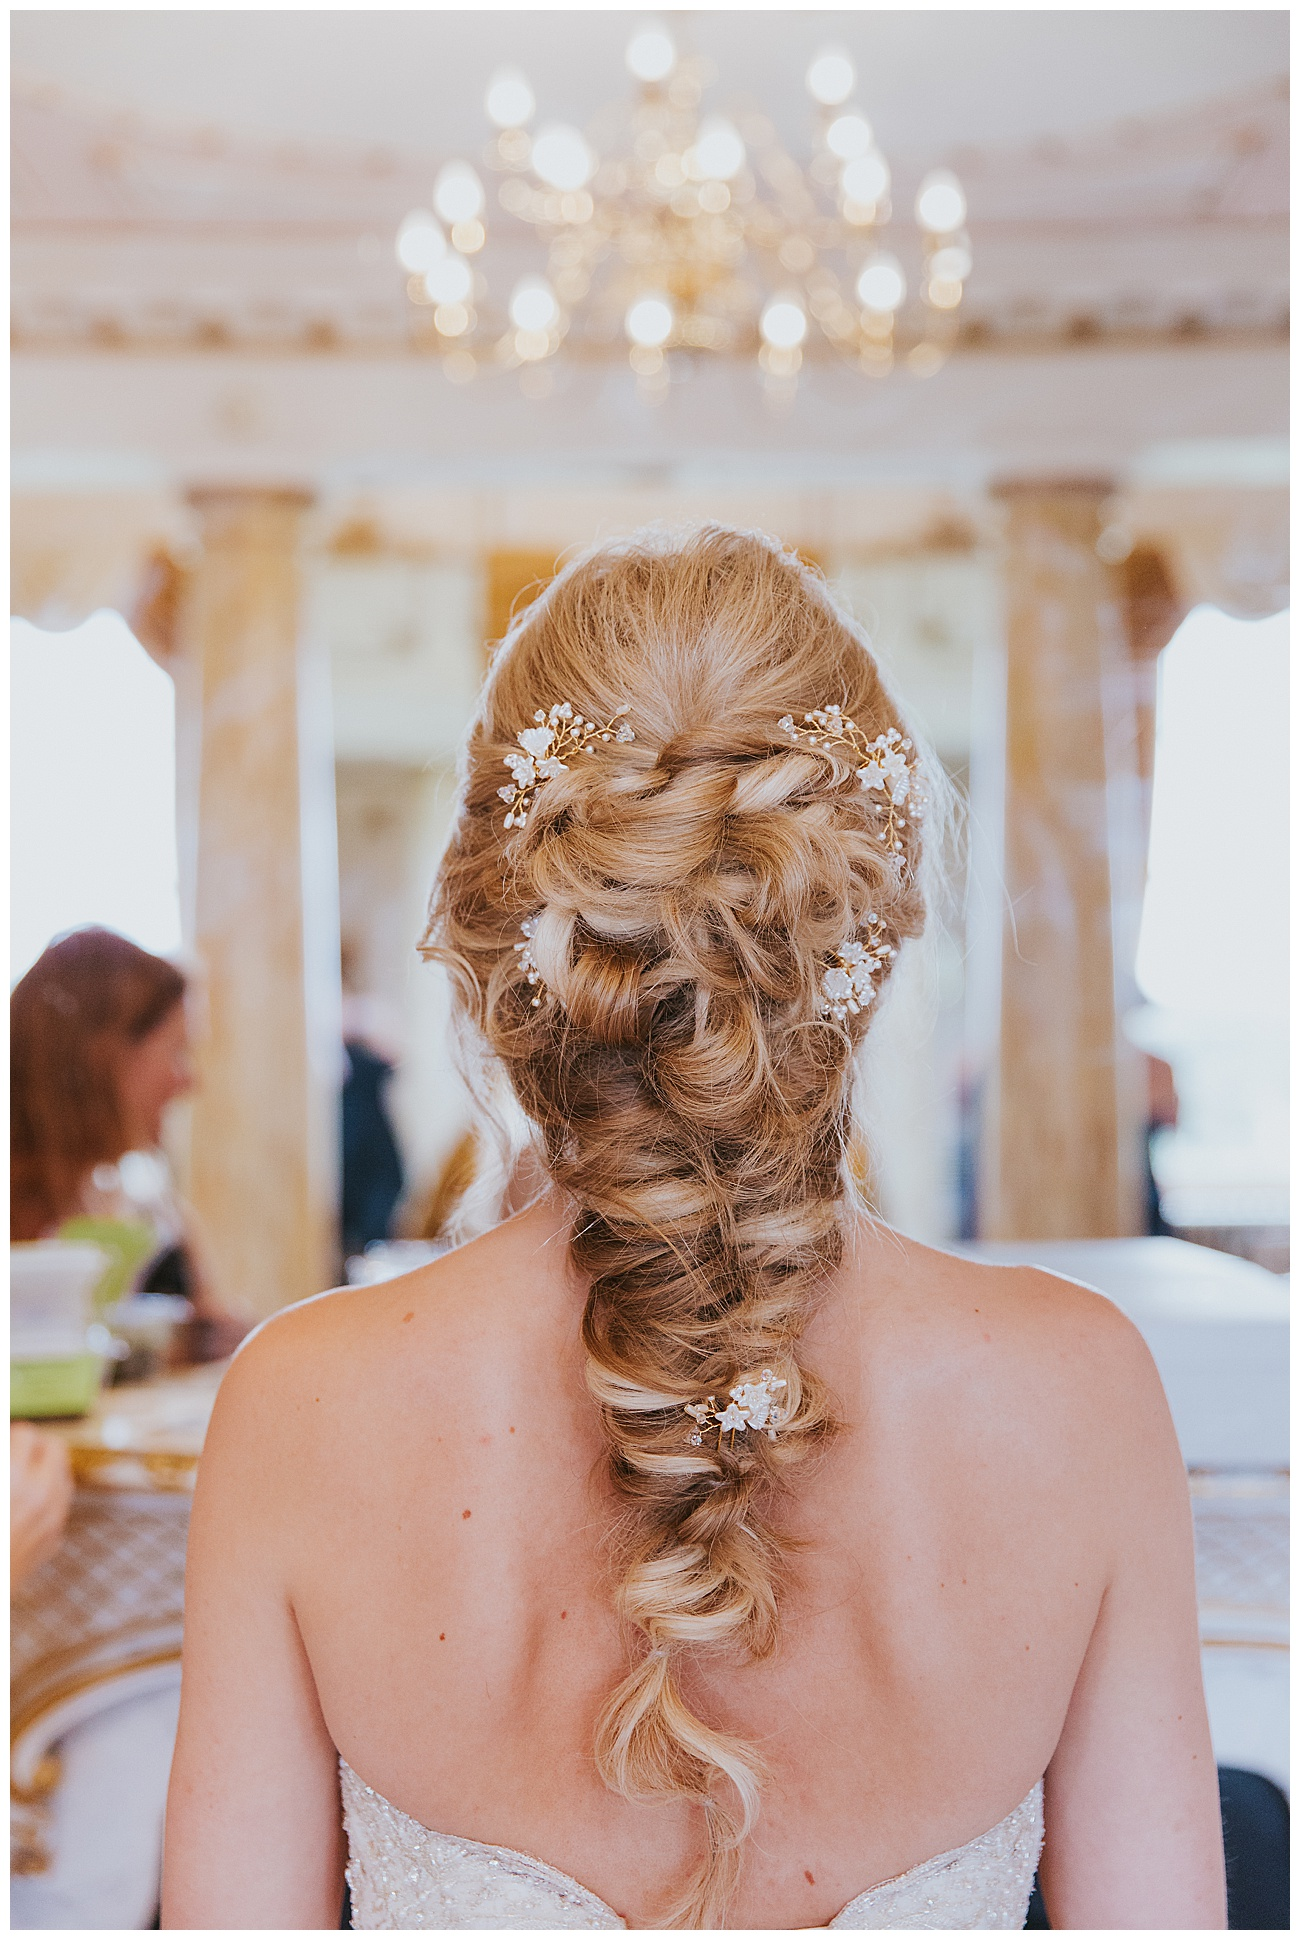 The back of the hair of the bride